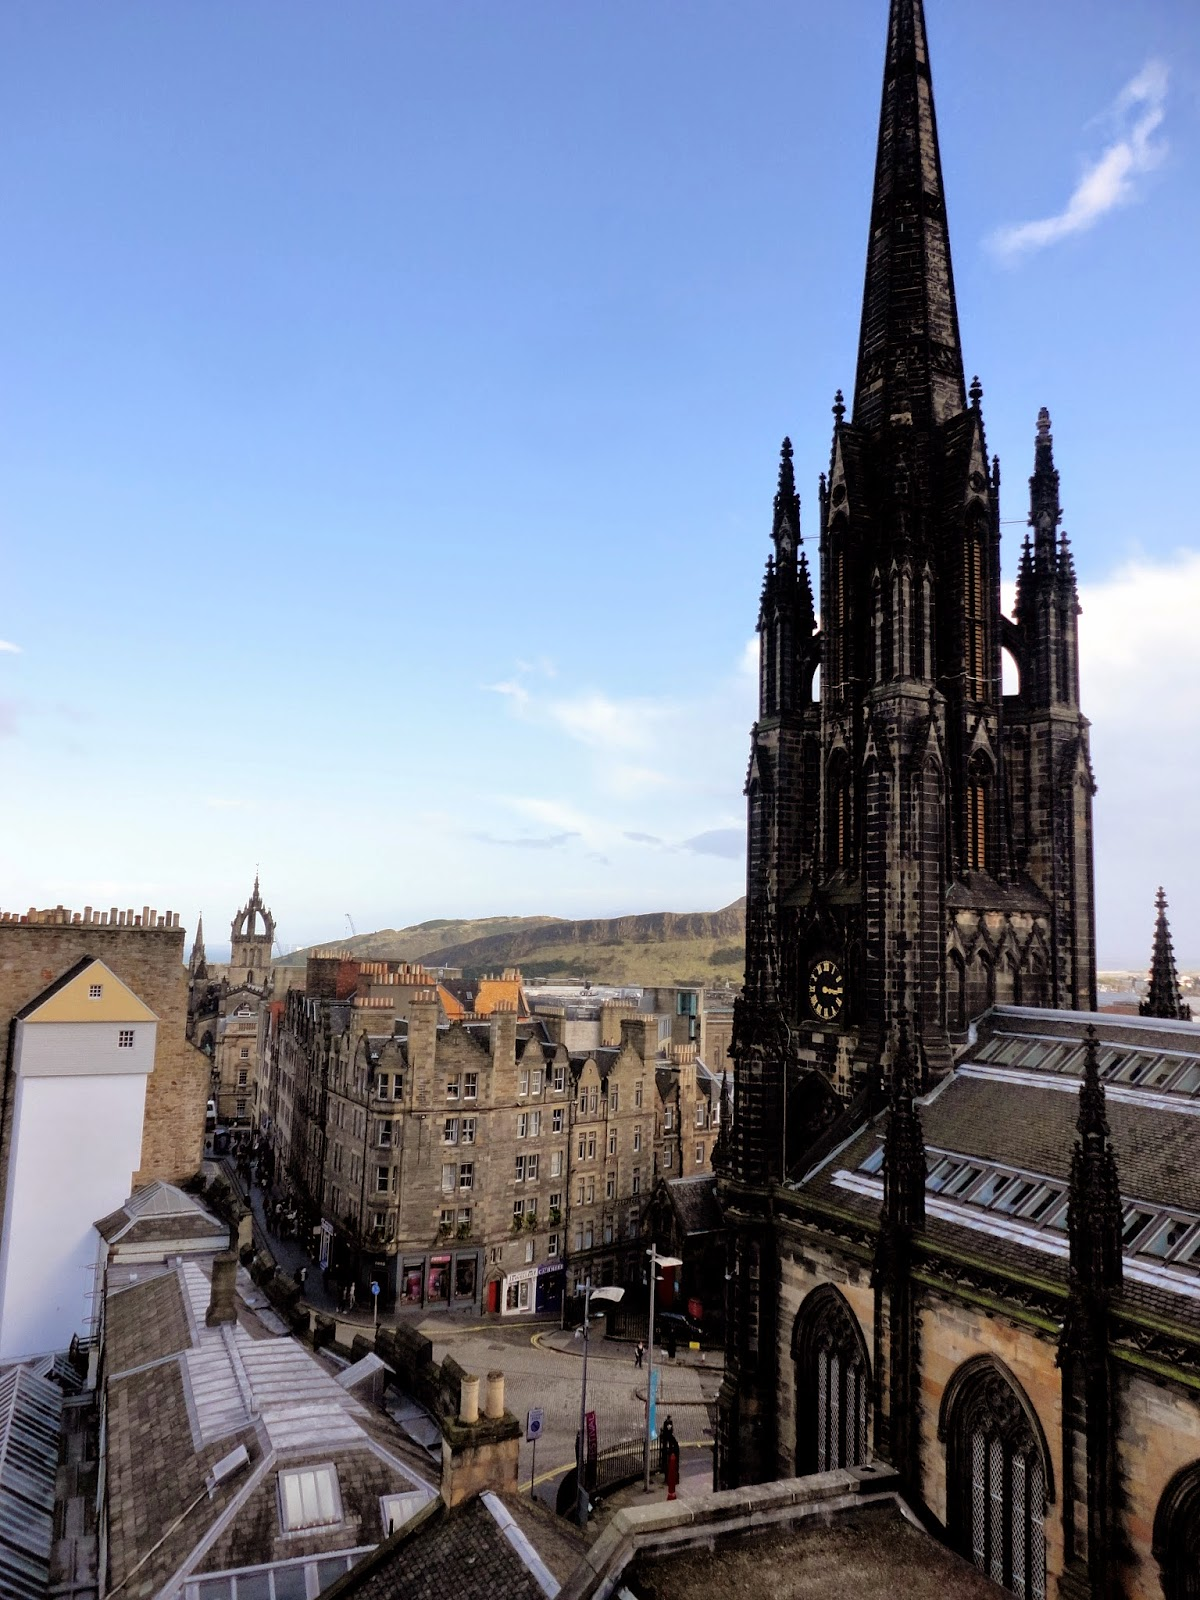 View of The Hub & Royal Mile from Camera Obscura, Edinburgh